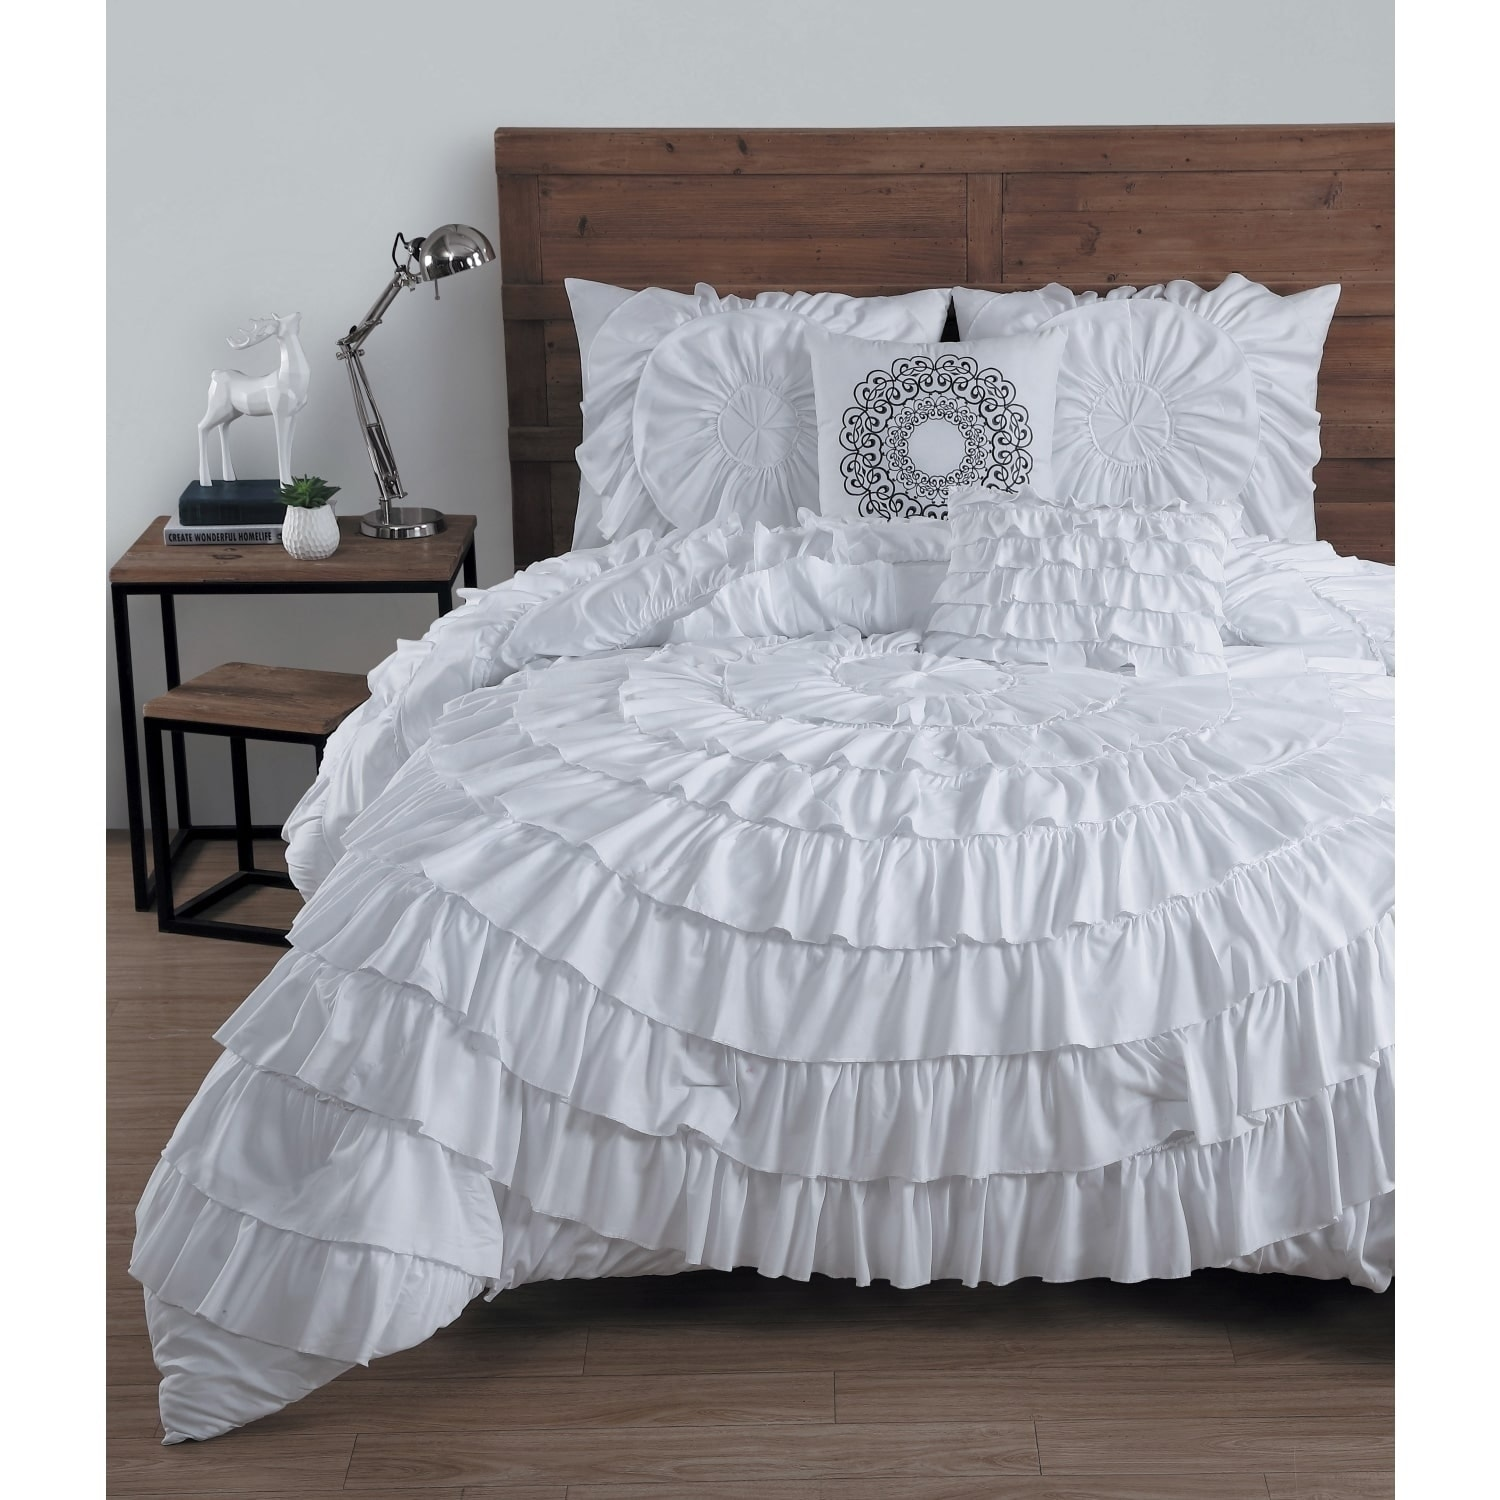 Shop Avondale Manor Saruffled 5 Piece Comforter Set